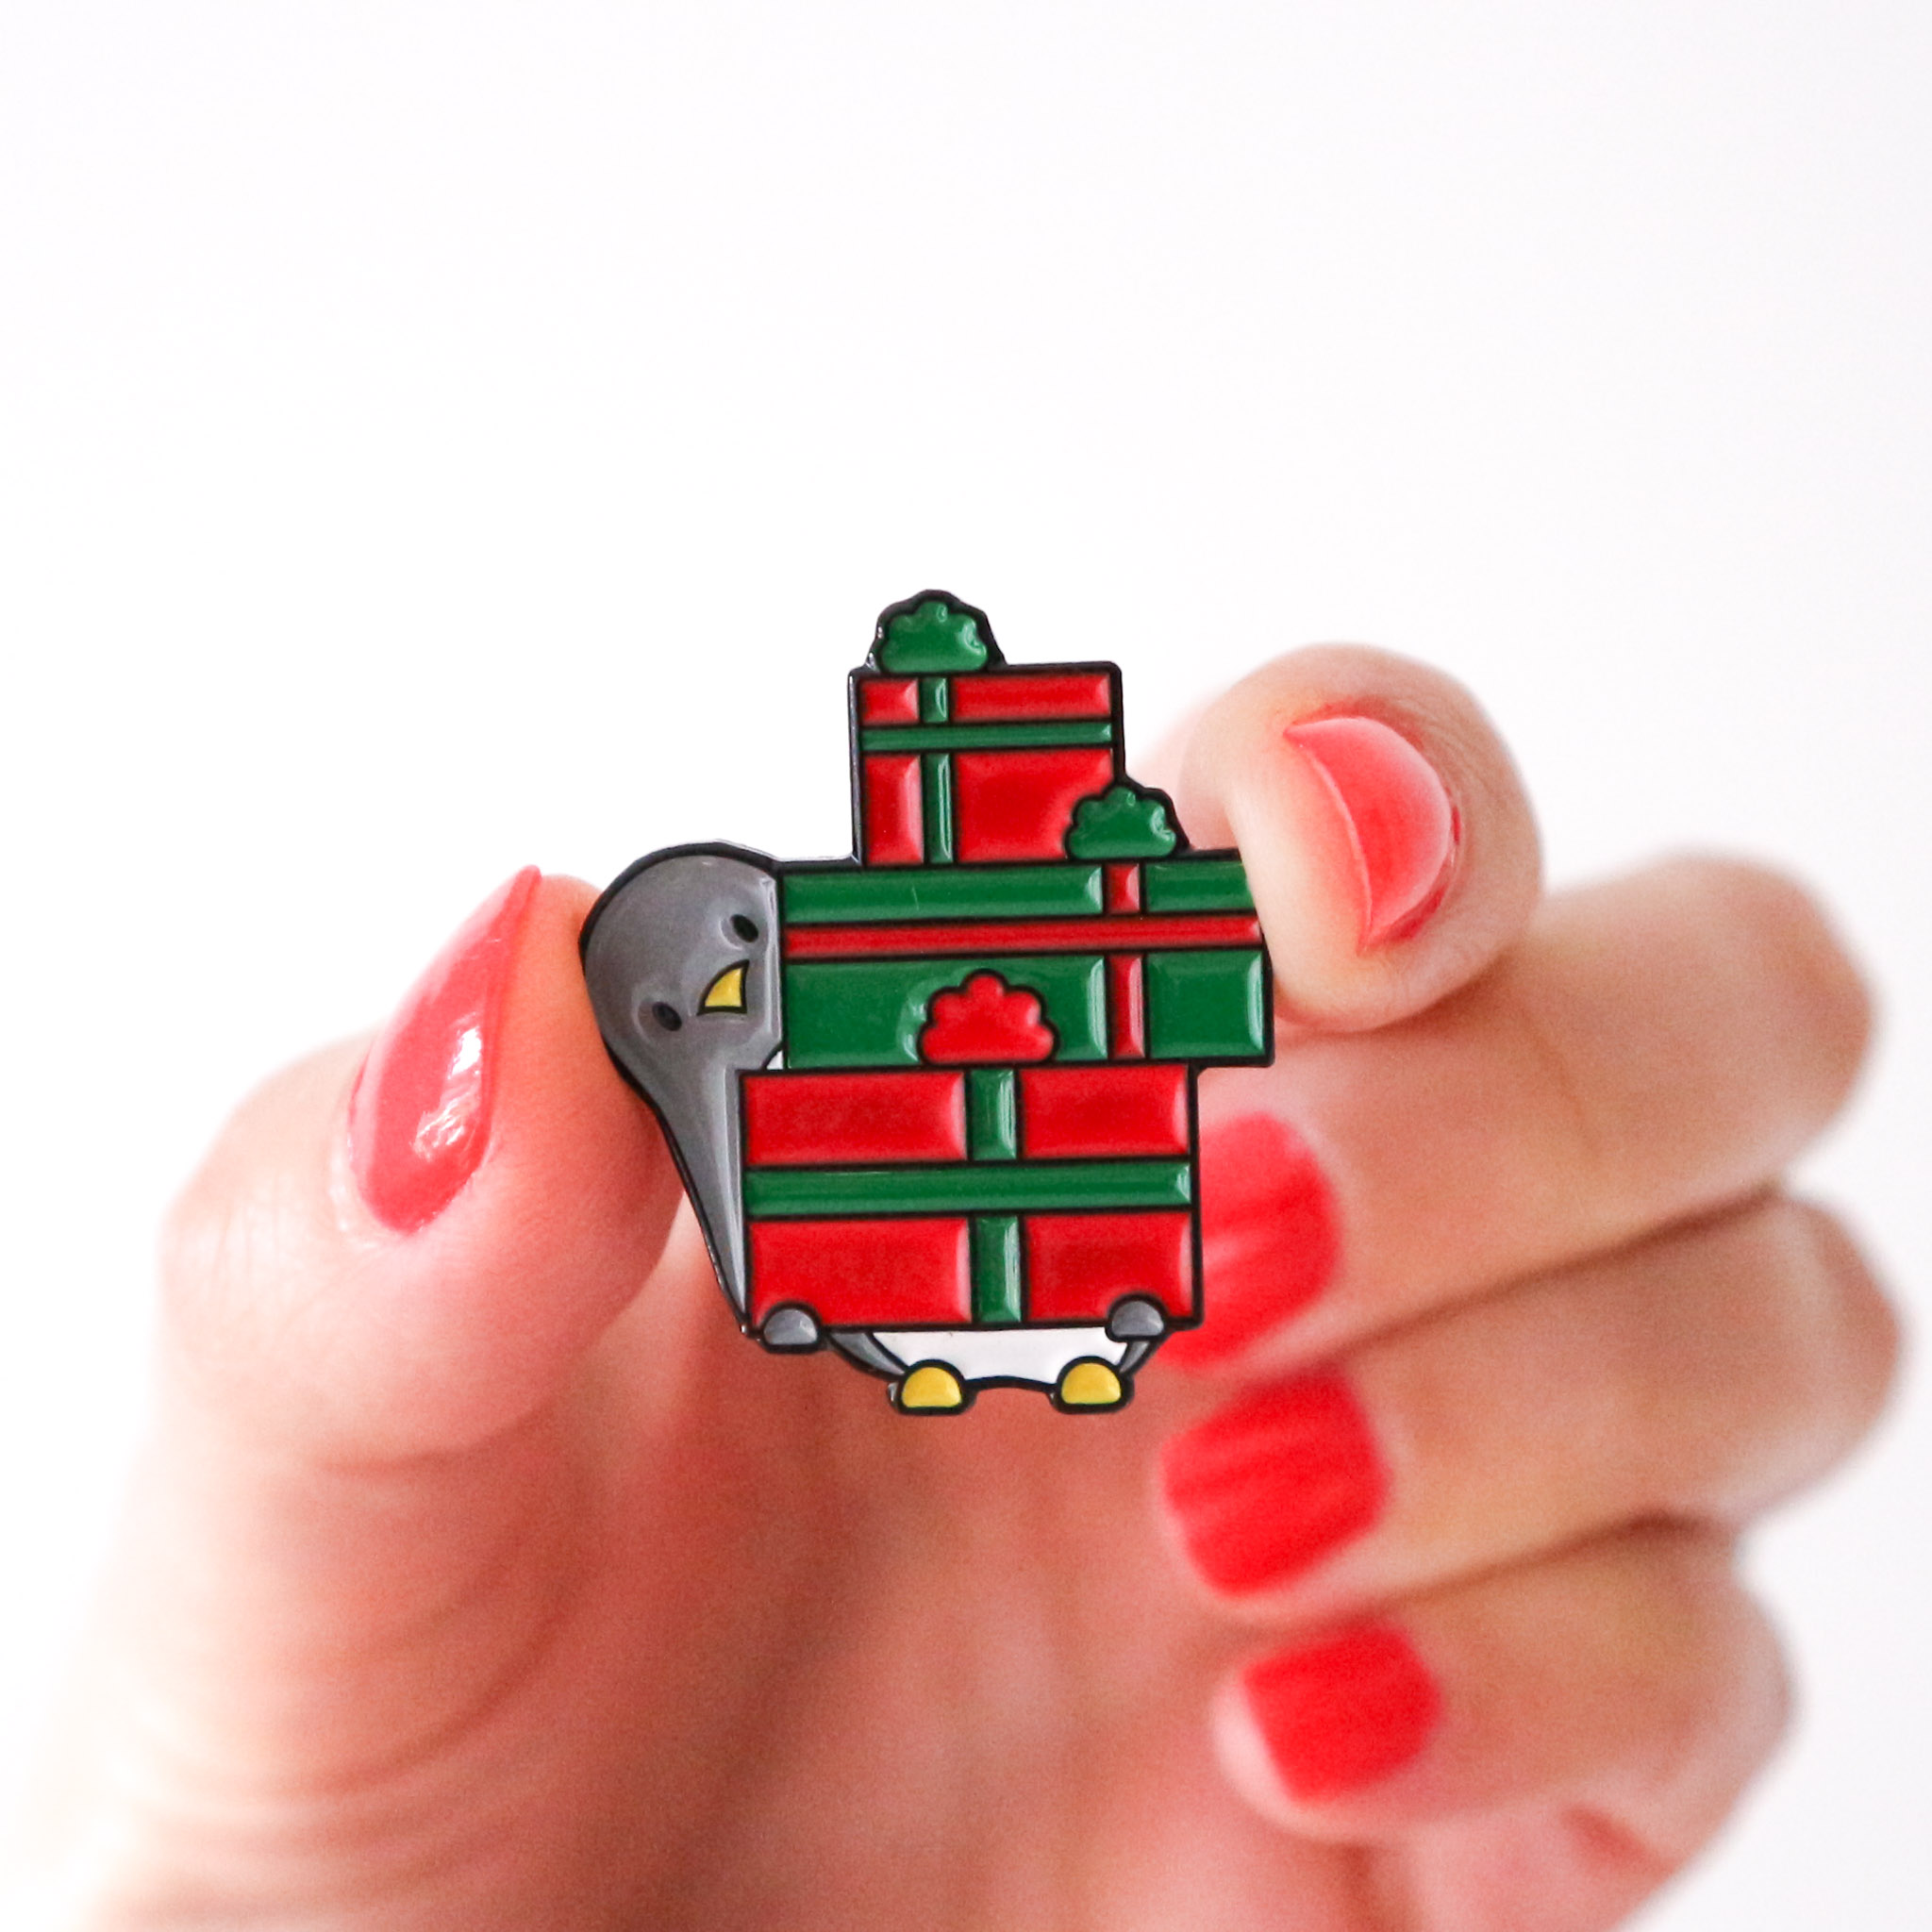 A photo of a hand, with red painted fingernails holding the Penguin Christmas Pin which is penguin holding a large stack of red and green gifts against a white background.